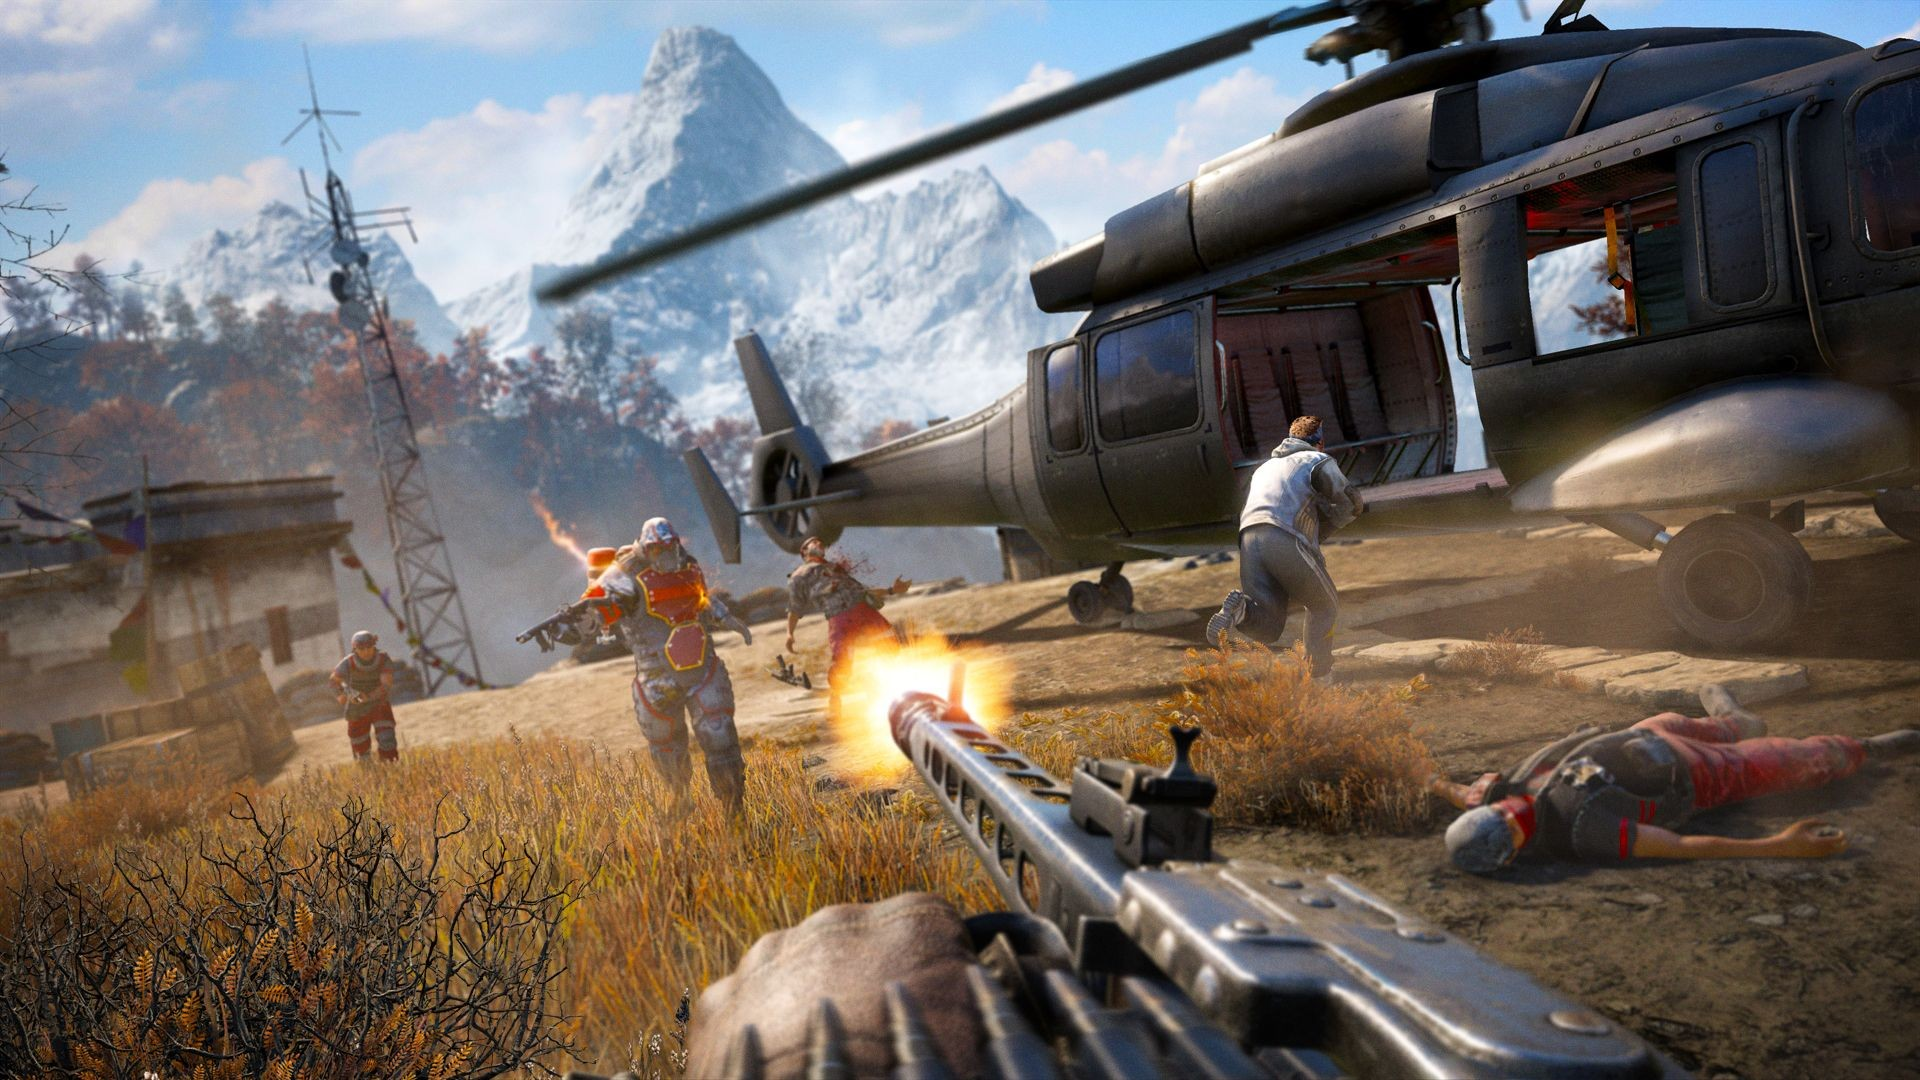 Far Cry 4 Pc Patch 1 8 0 Now Available Adds Custom Map Co Op